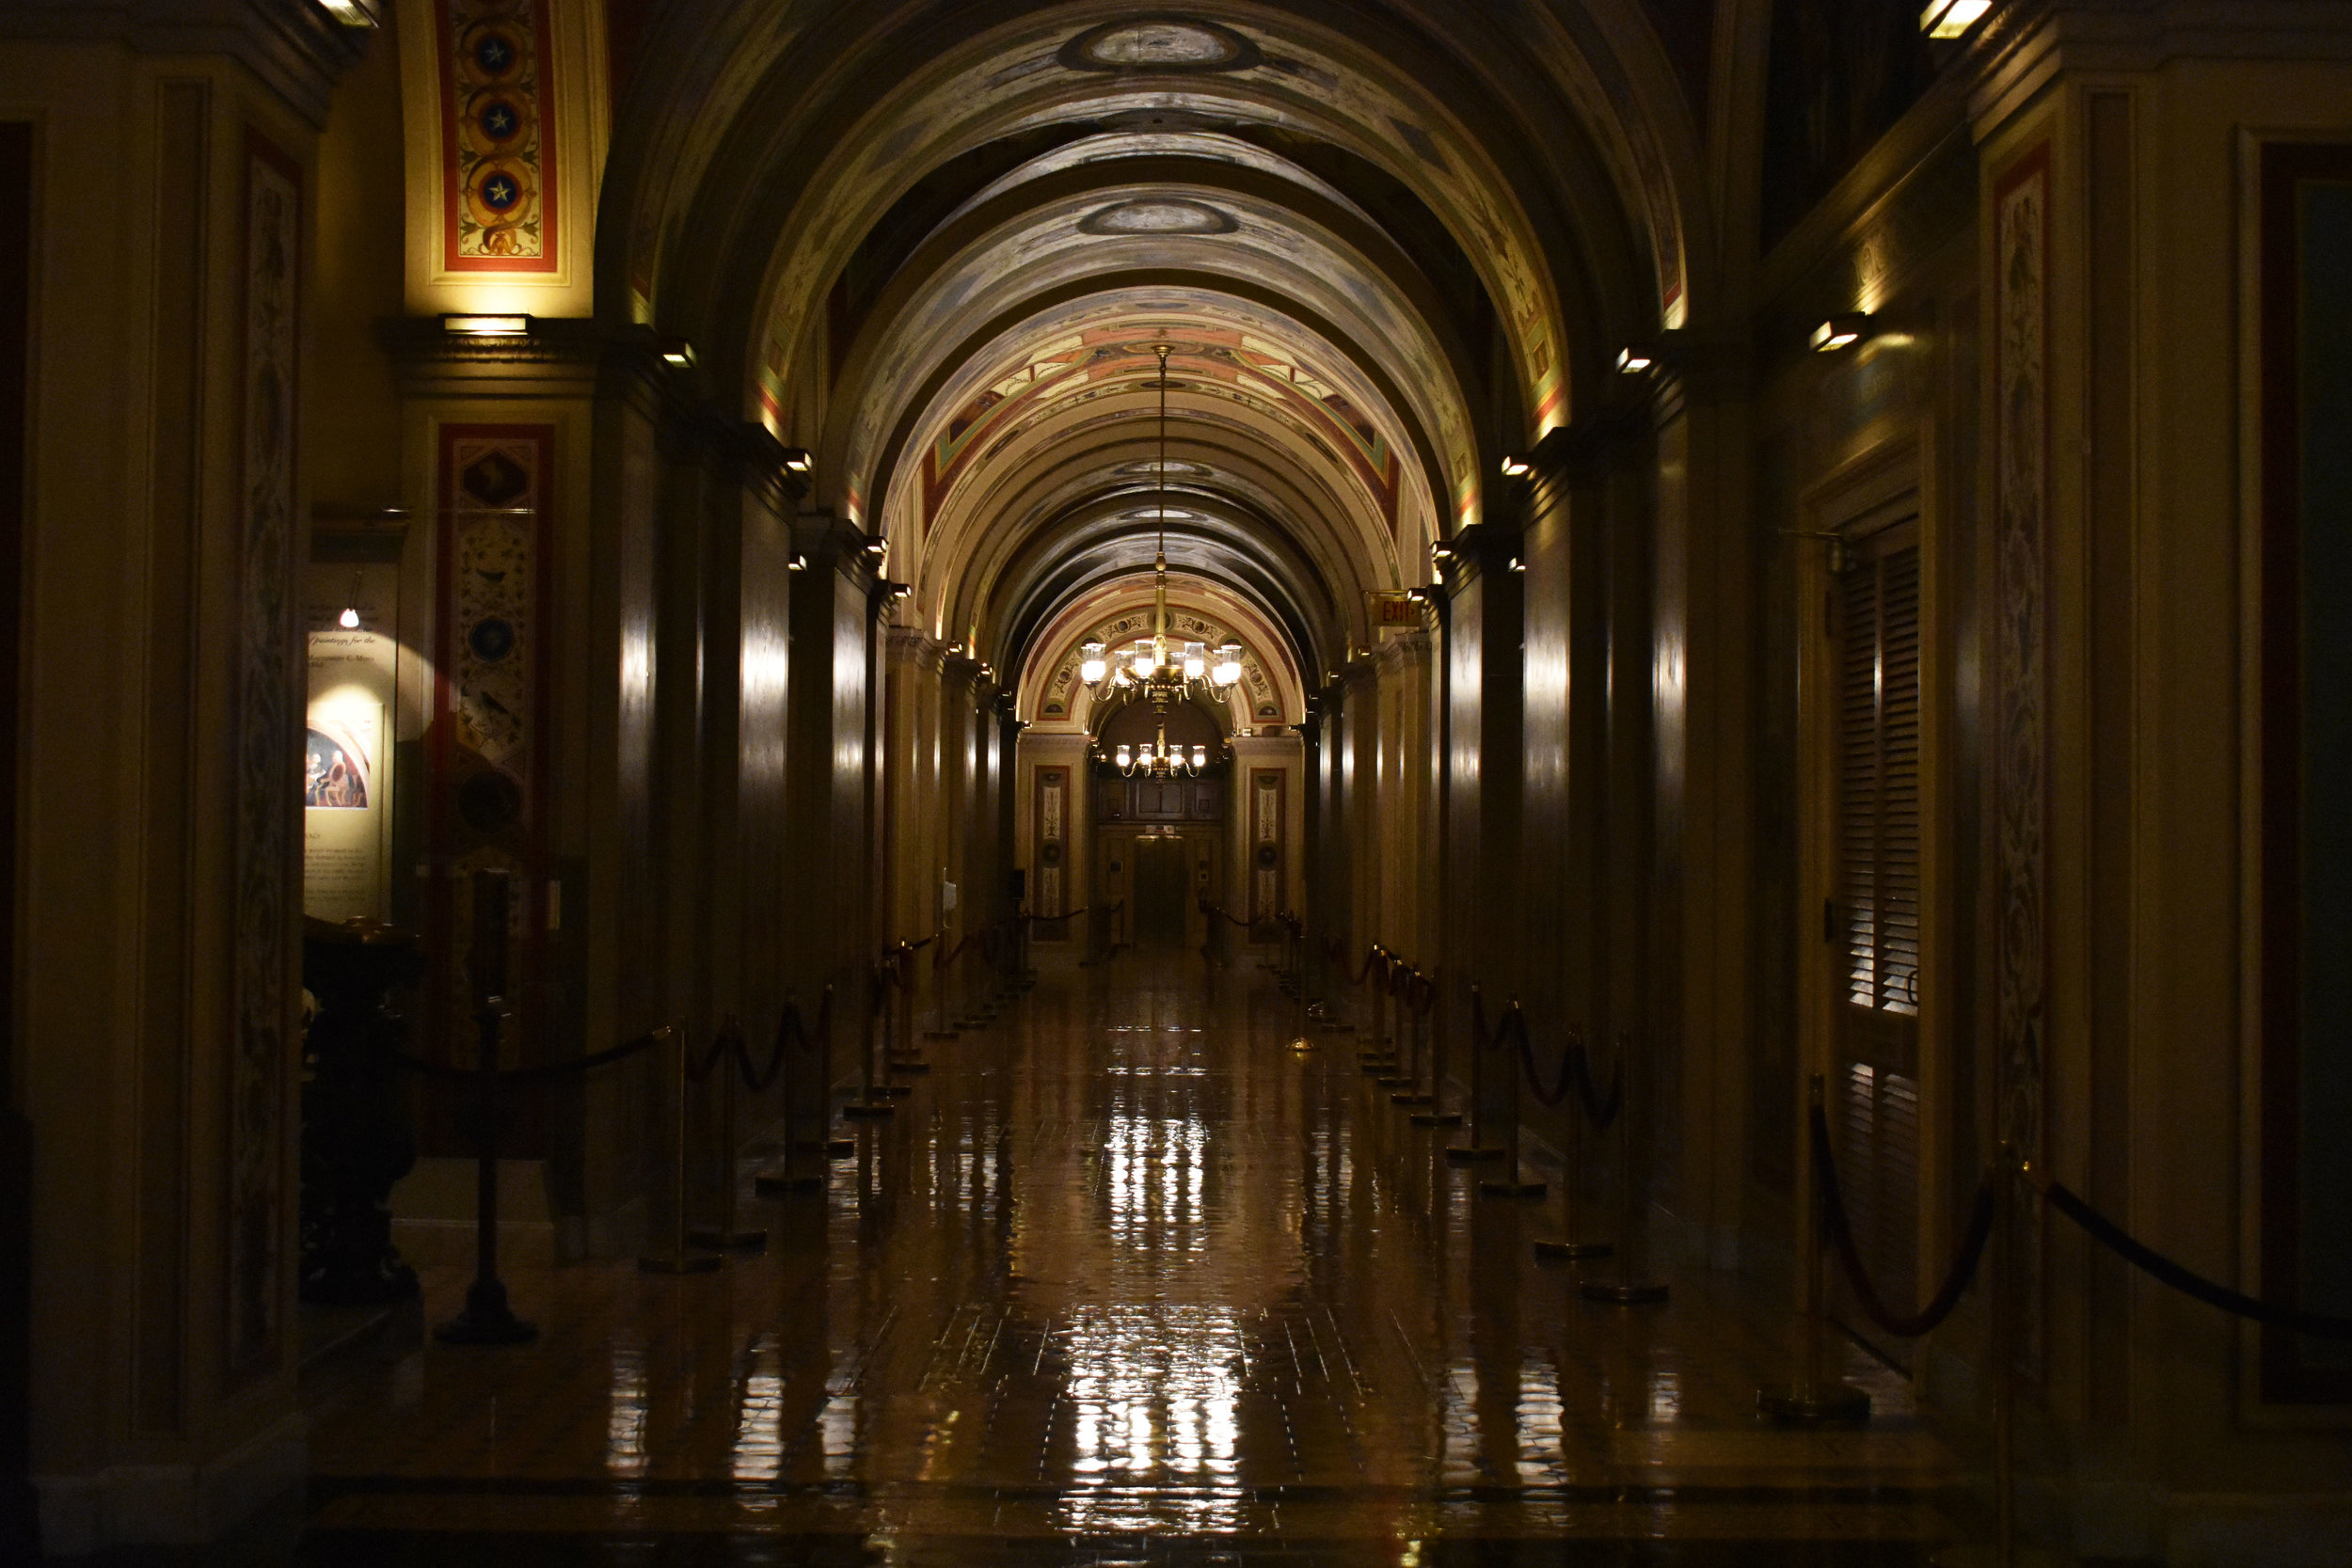 A hall is pictured at dusk on the Senate side of the U.S. Capitol in Washington, Thursday, Jan. 25, 2018. (Lindsey Leake/American University)